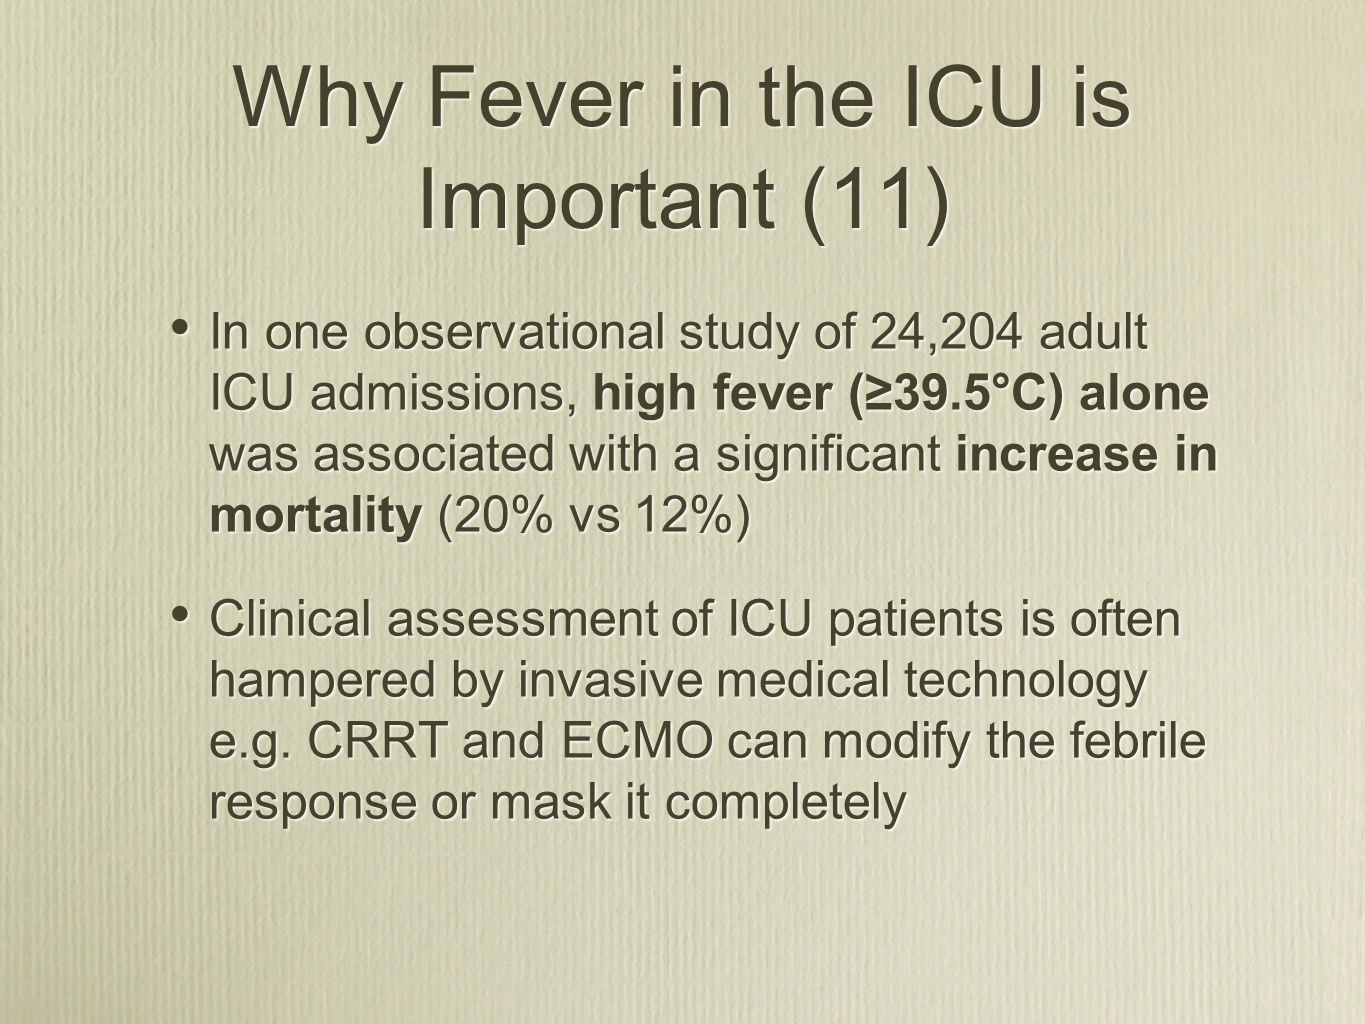 Why Fever in the ICU is Important (11)